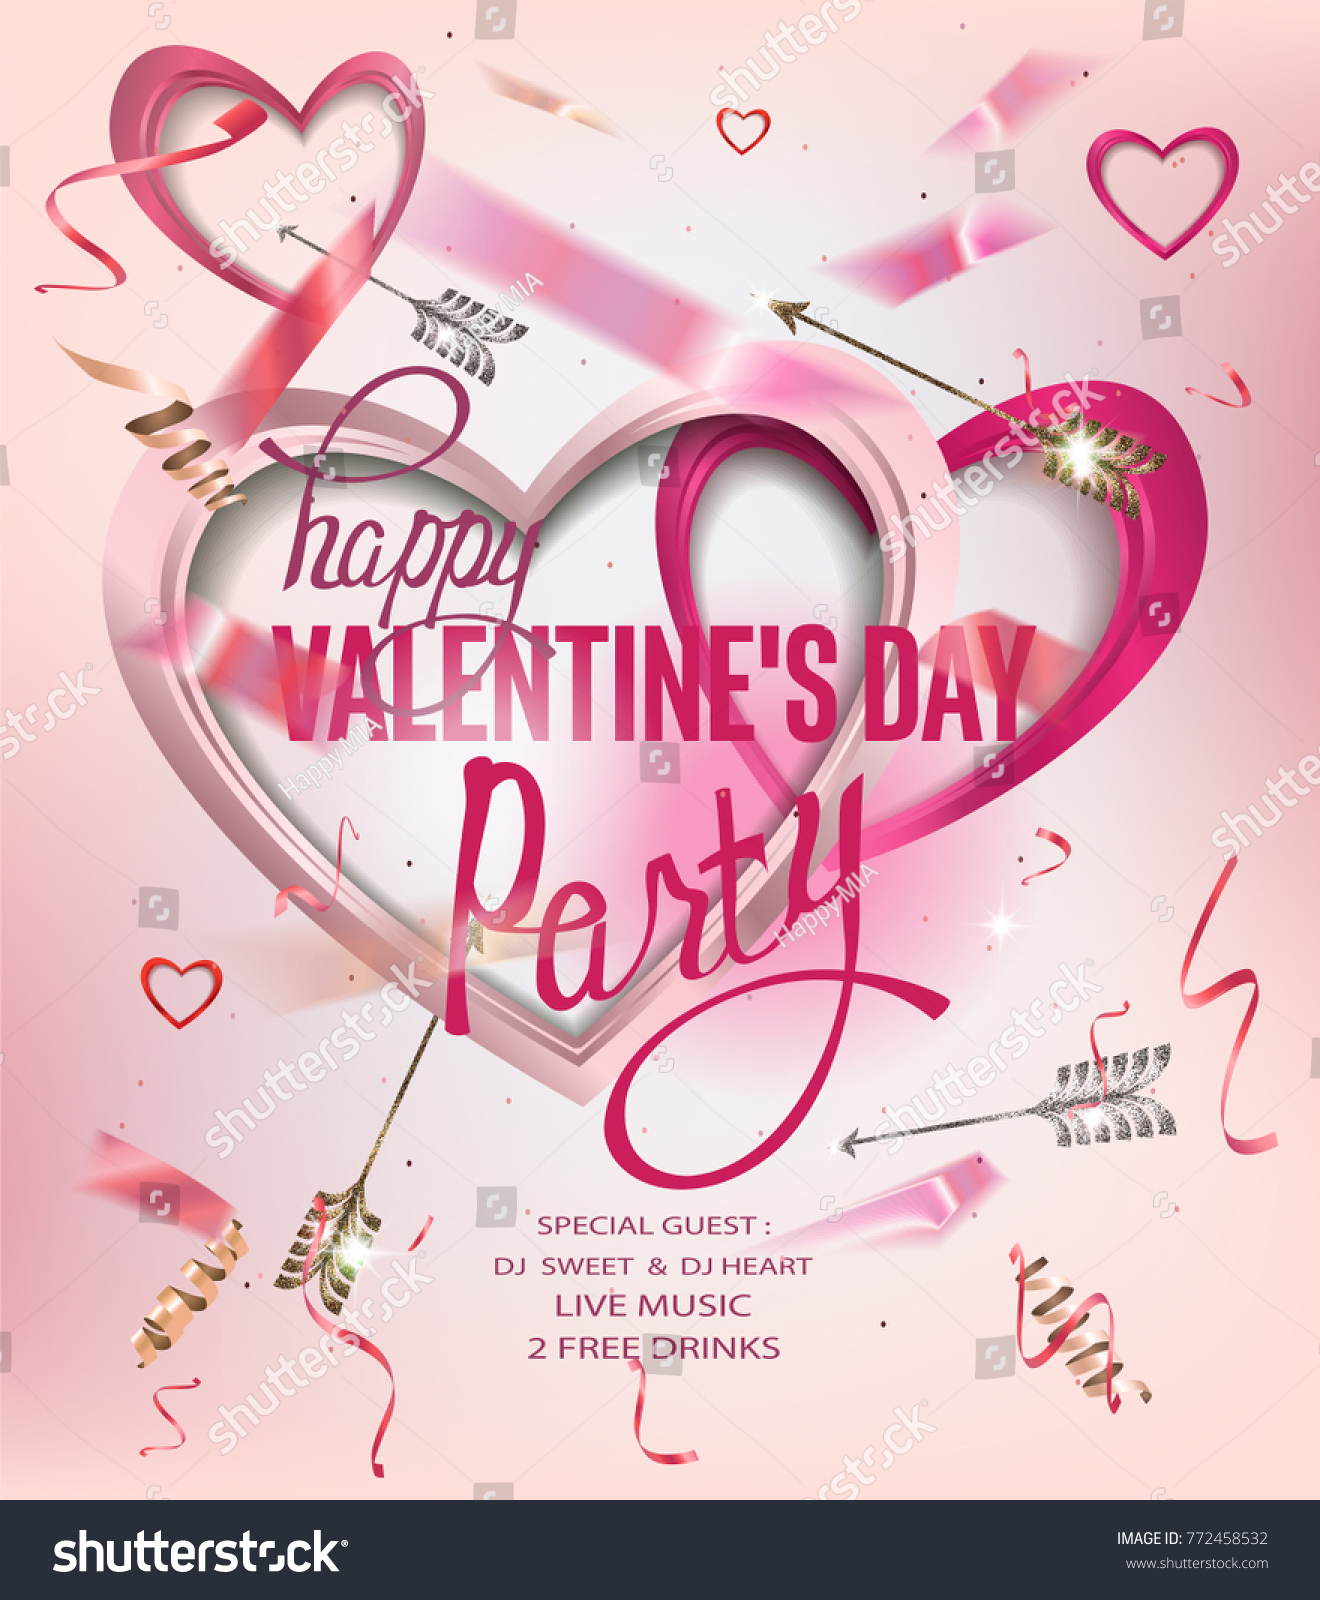 Valentines Day Party Invitation Card Hearts Stock Vector 772458532 ...